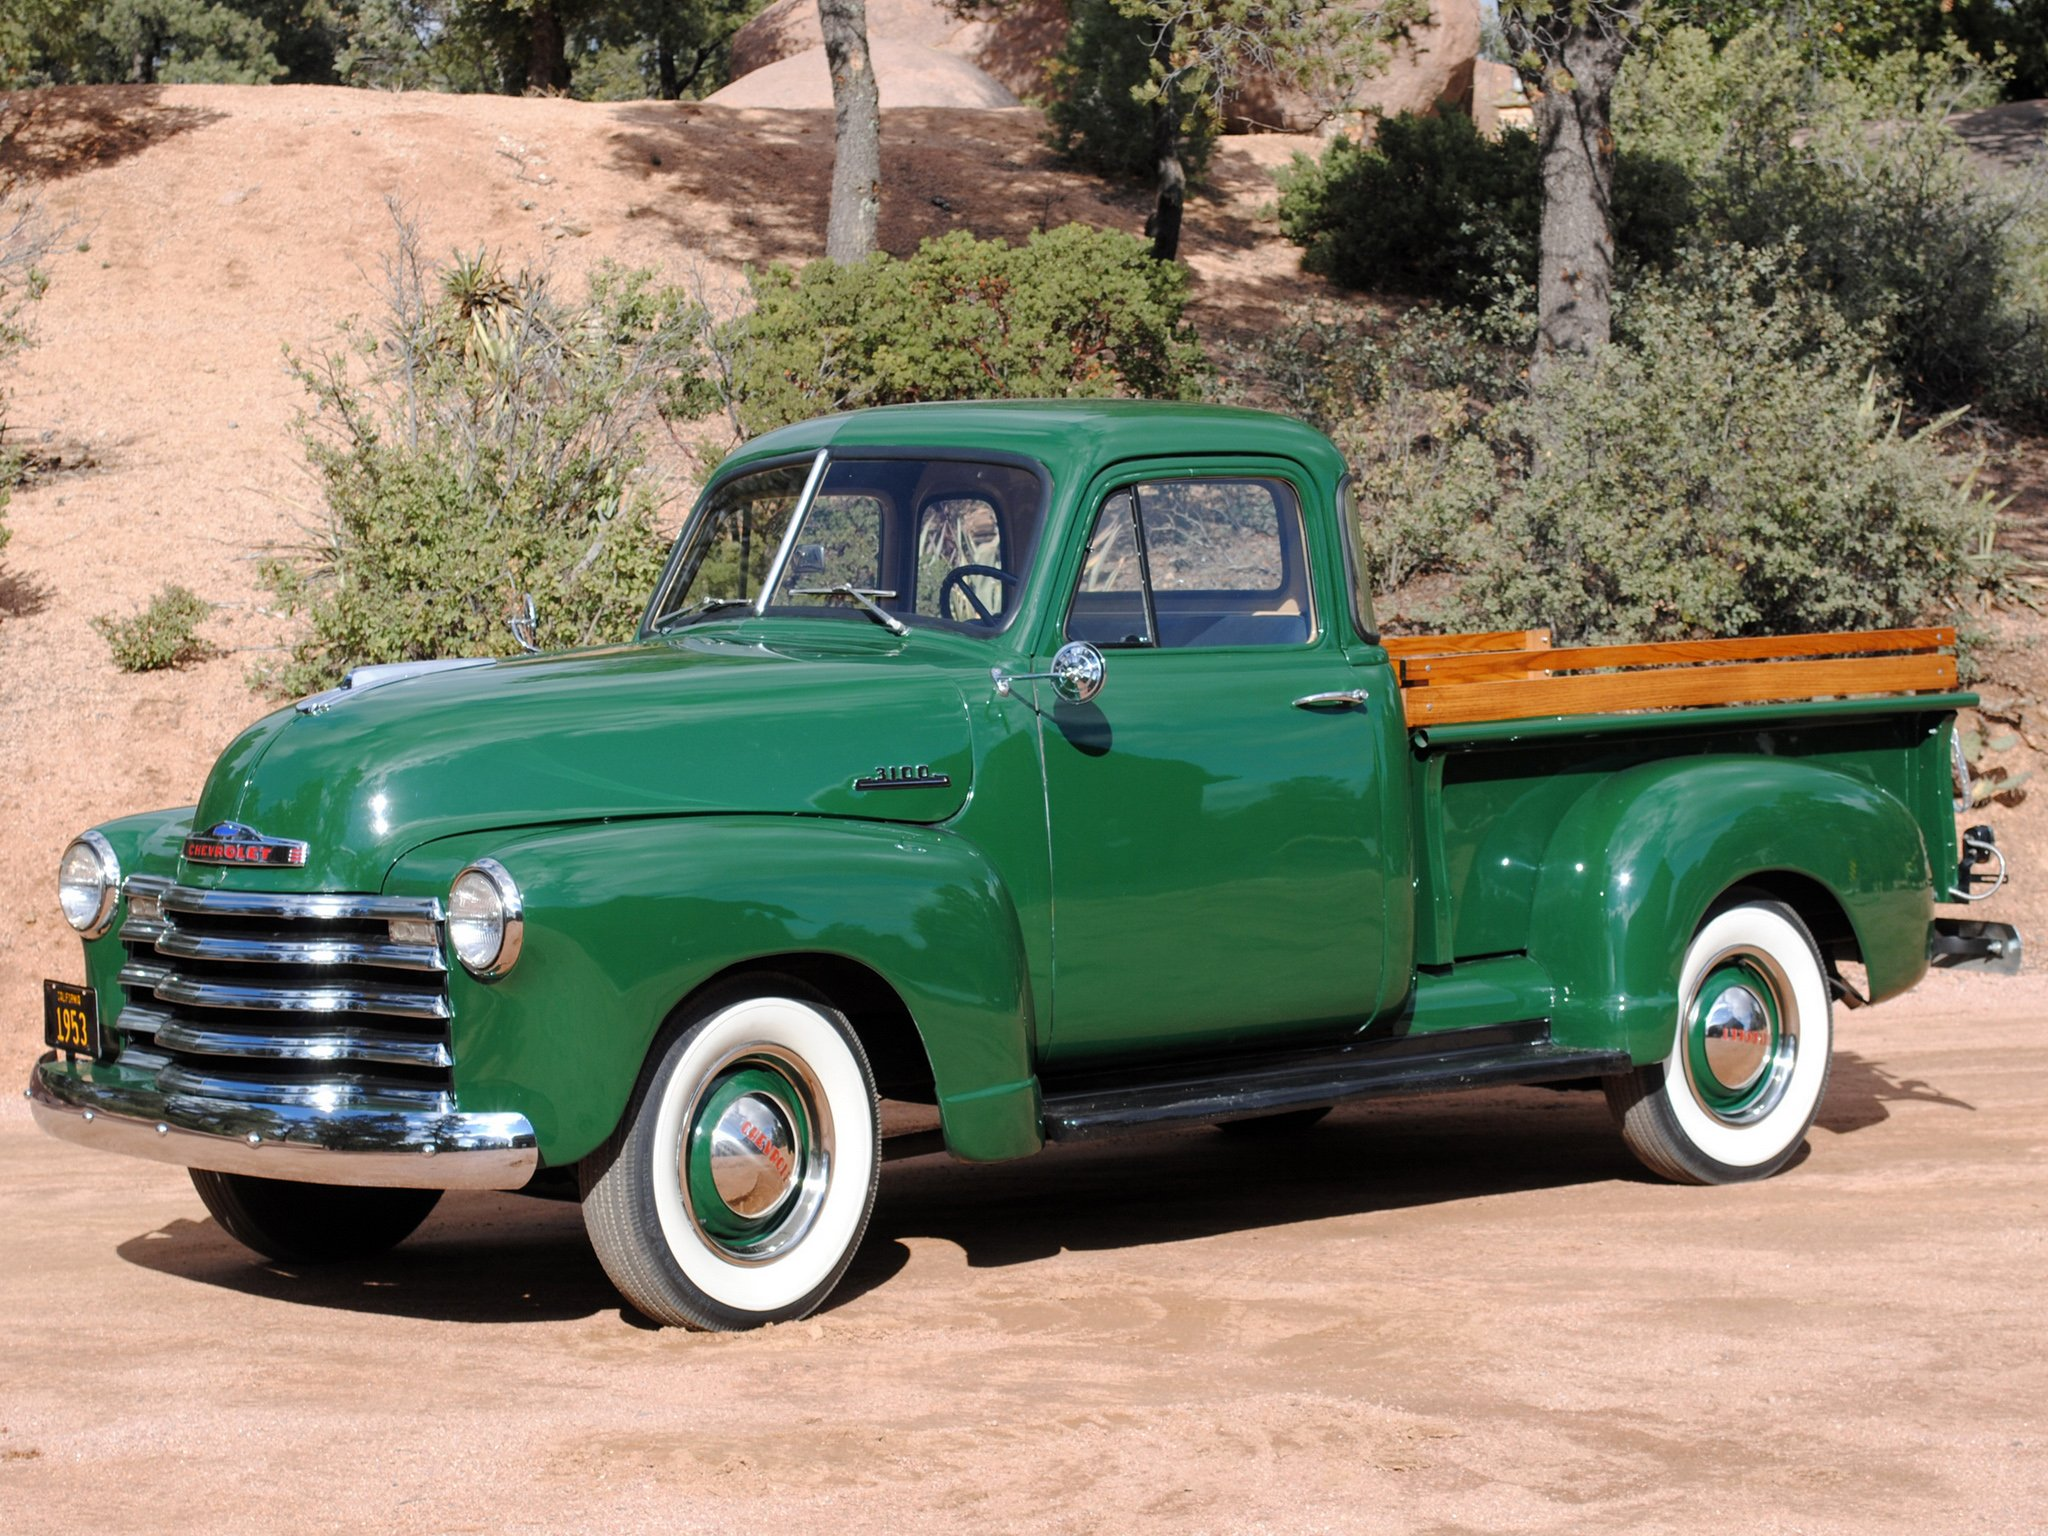 1957 Cars Restored Or Wallpapers 1953 Chevrolet 3100 Pickup Truck Classic Cars Green